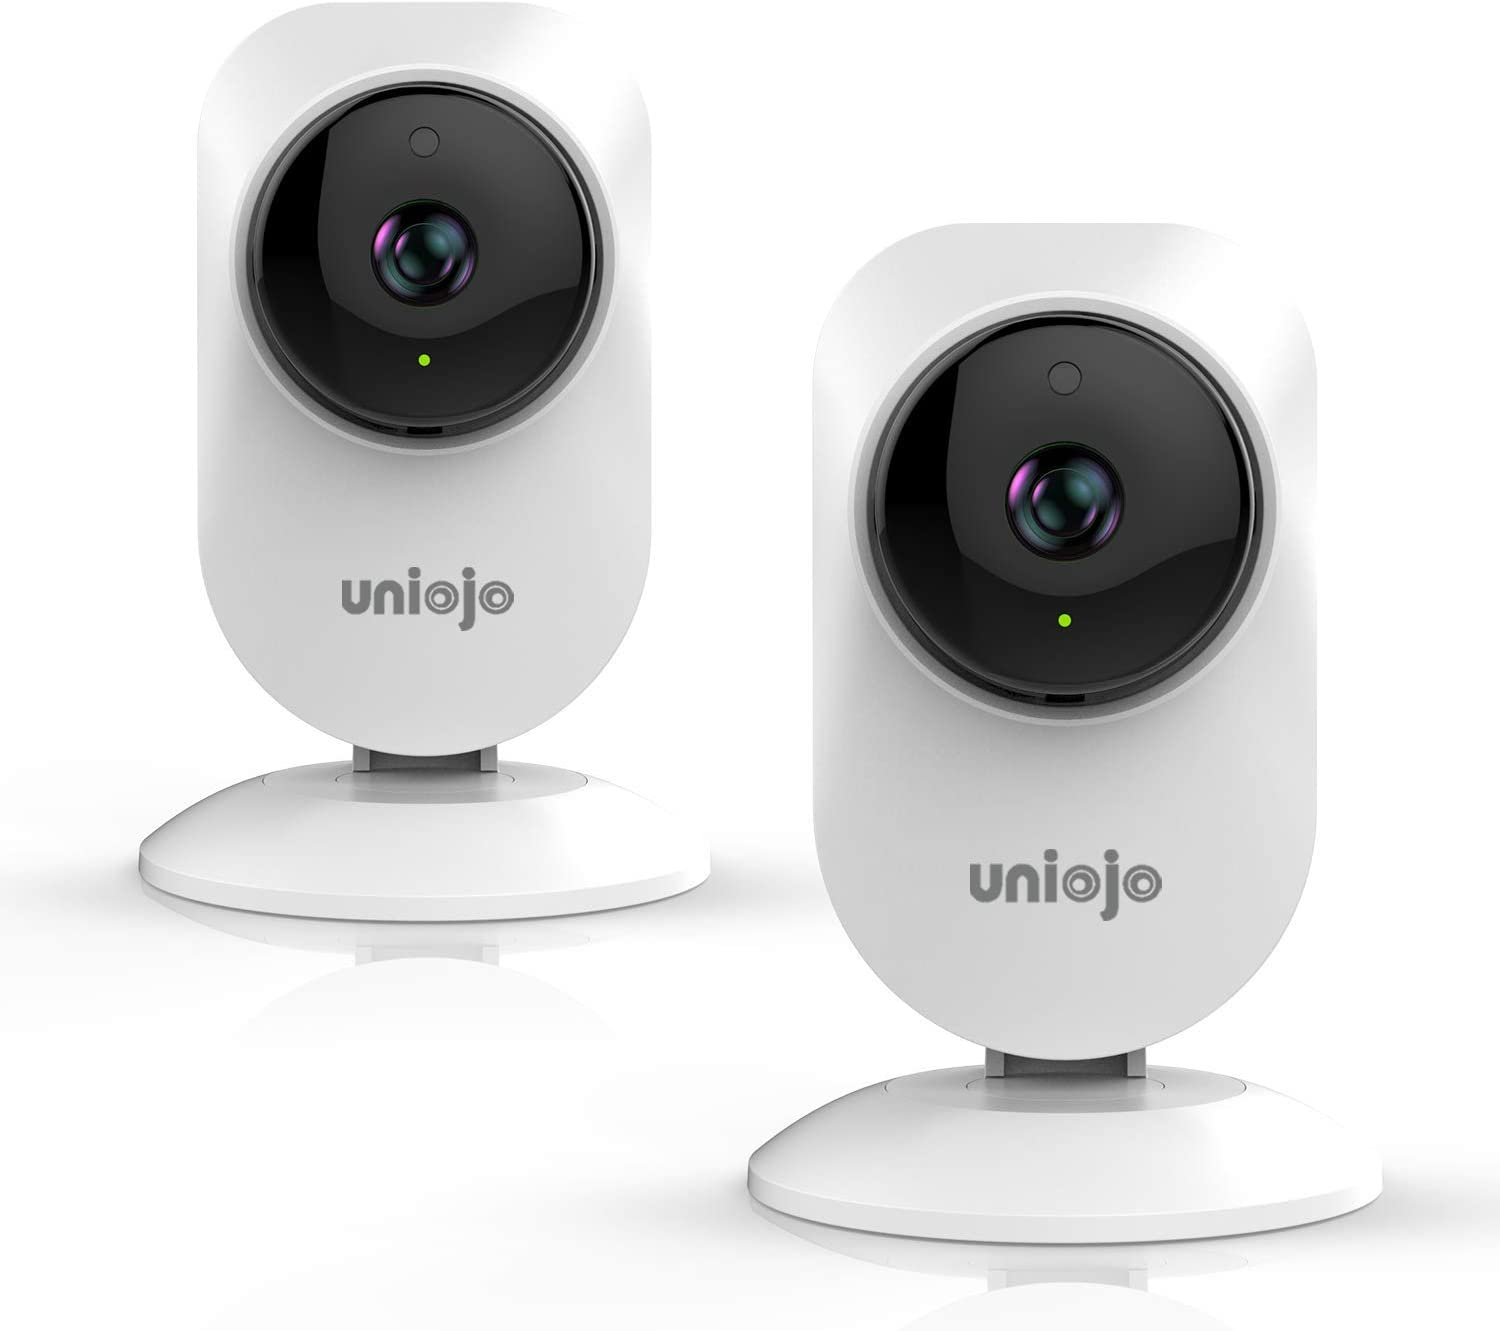 WiFi Camera Indoor, UNIOJO 1080P Home Surveillance IP Camera with Alexa, Night Vision, Movement Tracking, Activity Alerts, Cloud Service Available for Baby/Elder/Pet Monitor (2 Pack)